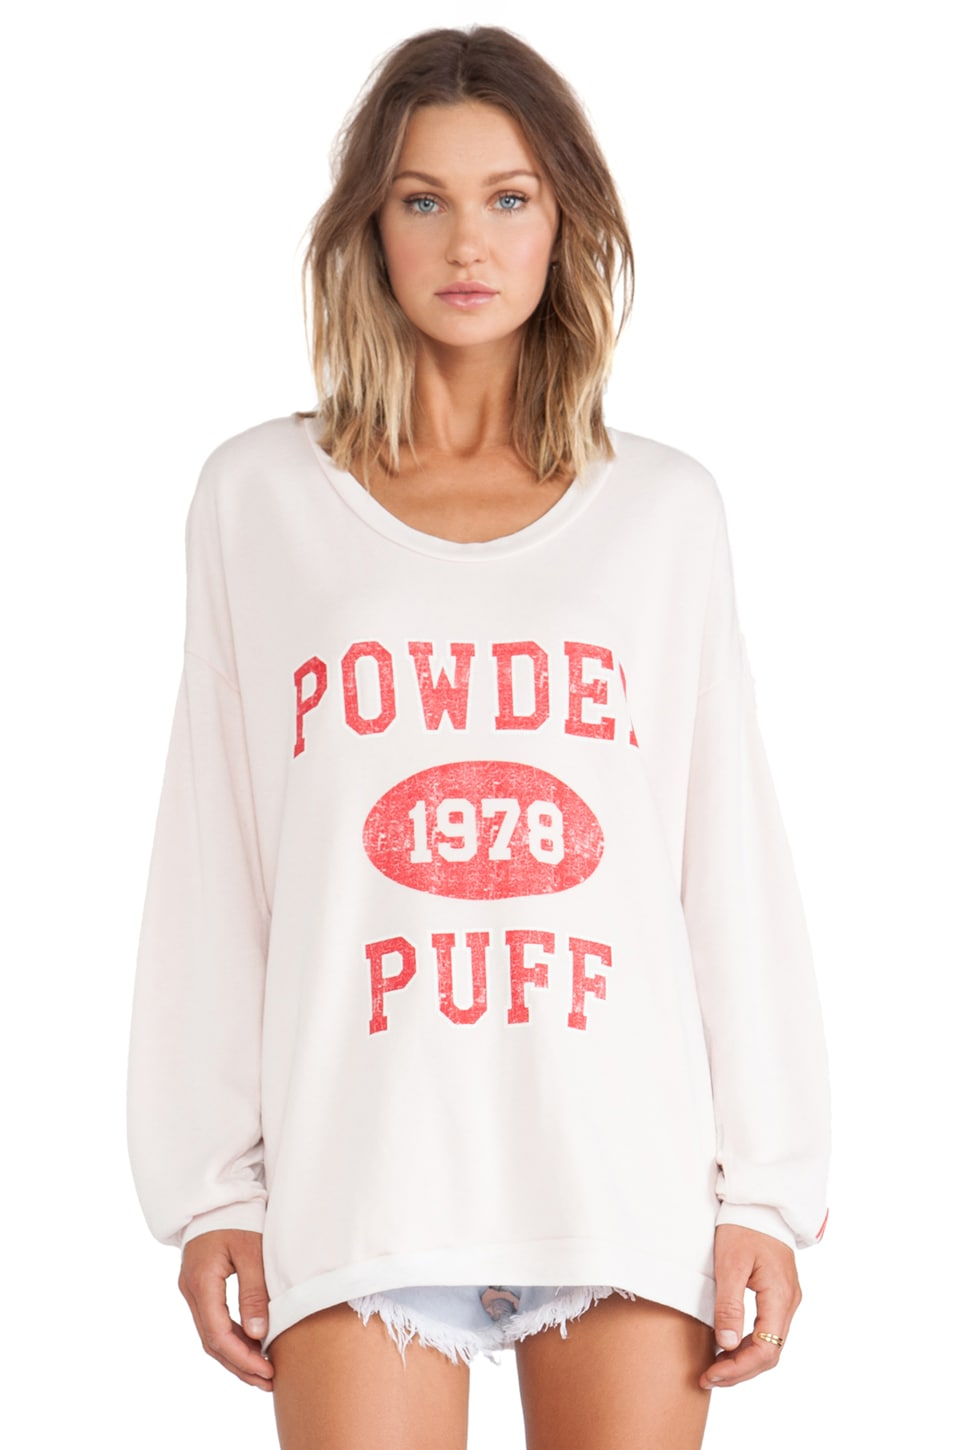 Rebel Yell Powder Puff Strokes Warm Up Sweatshirt in Blush